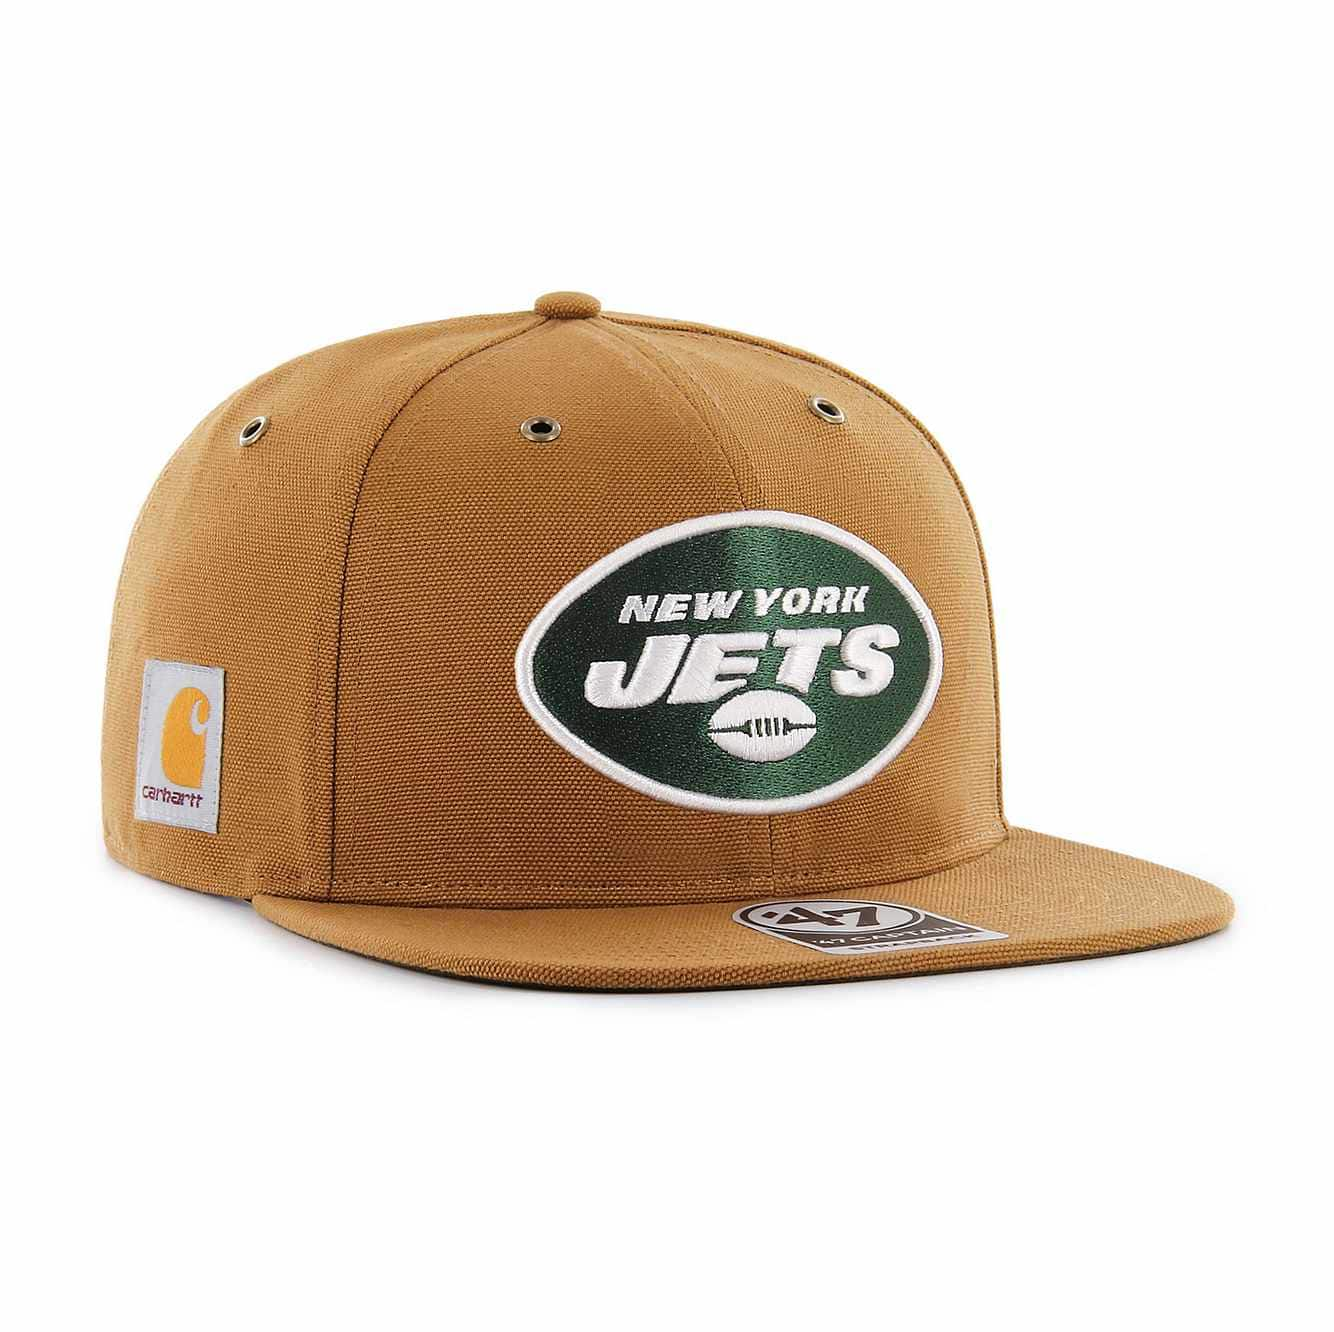 Picture of New York Jets Carhartt X '47 Captain in Carhartt Brown